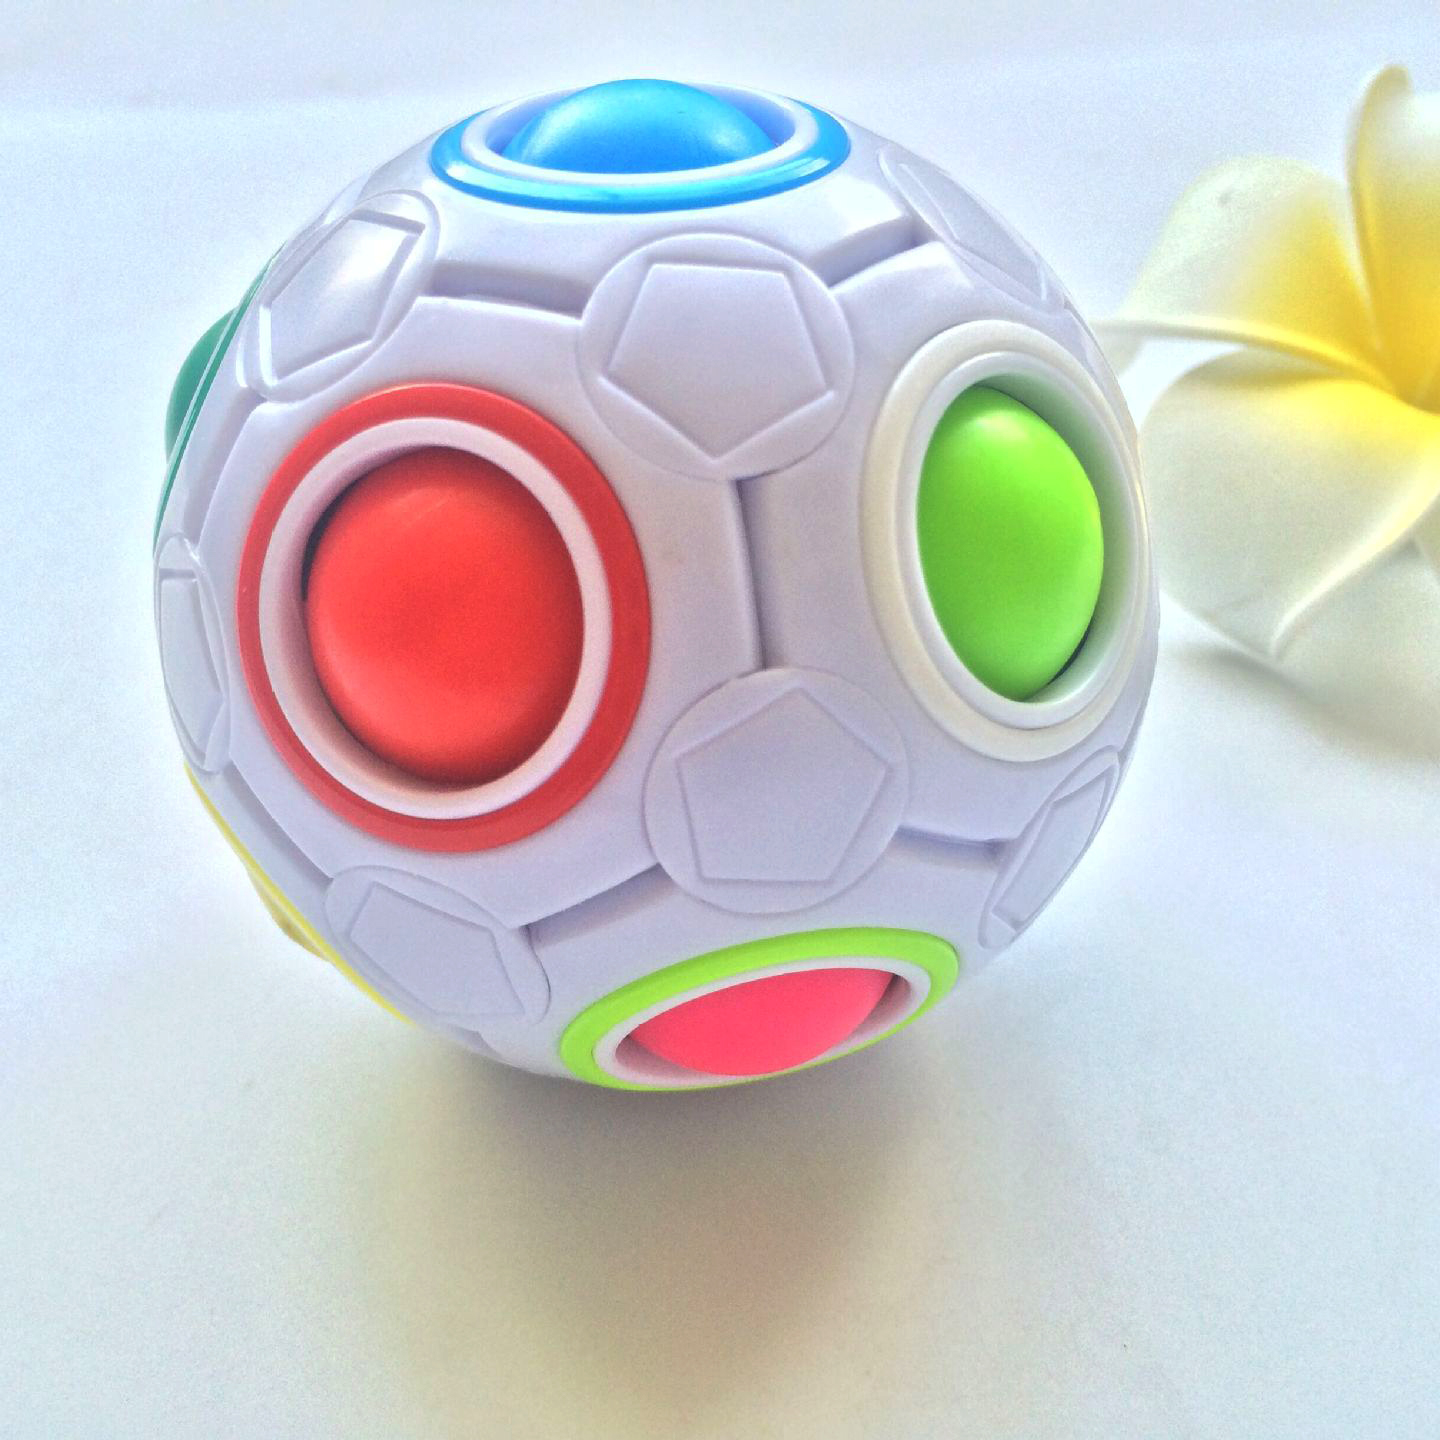 Clearance SaleToys Puzzle Ball-Antistress Montessori Magic-Cube Football Rainbow Children for Reliever